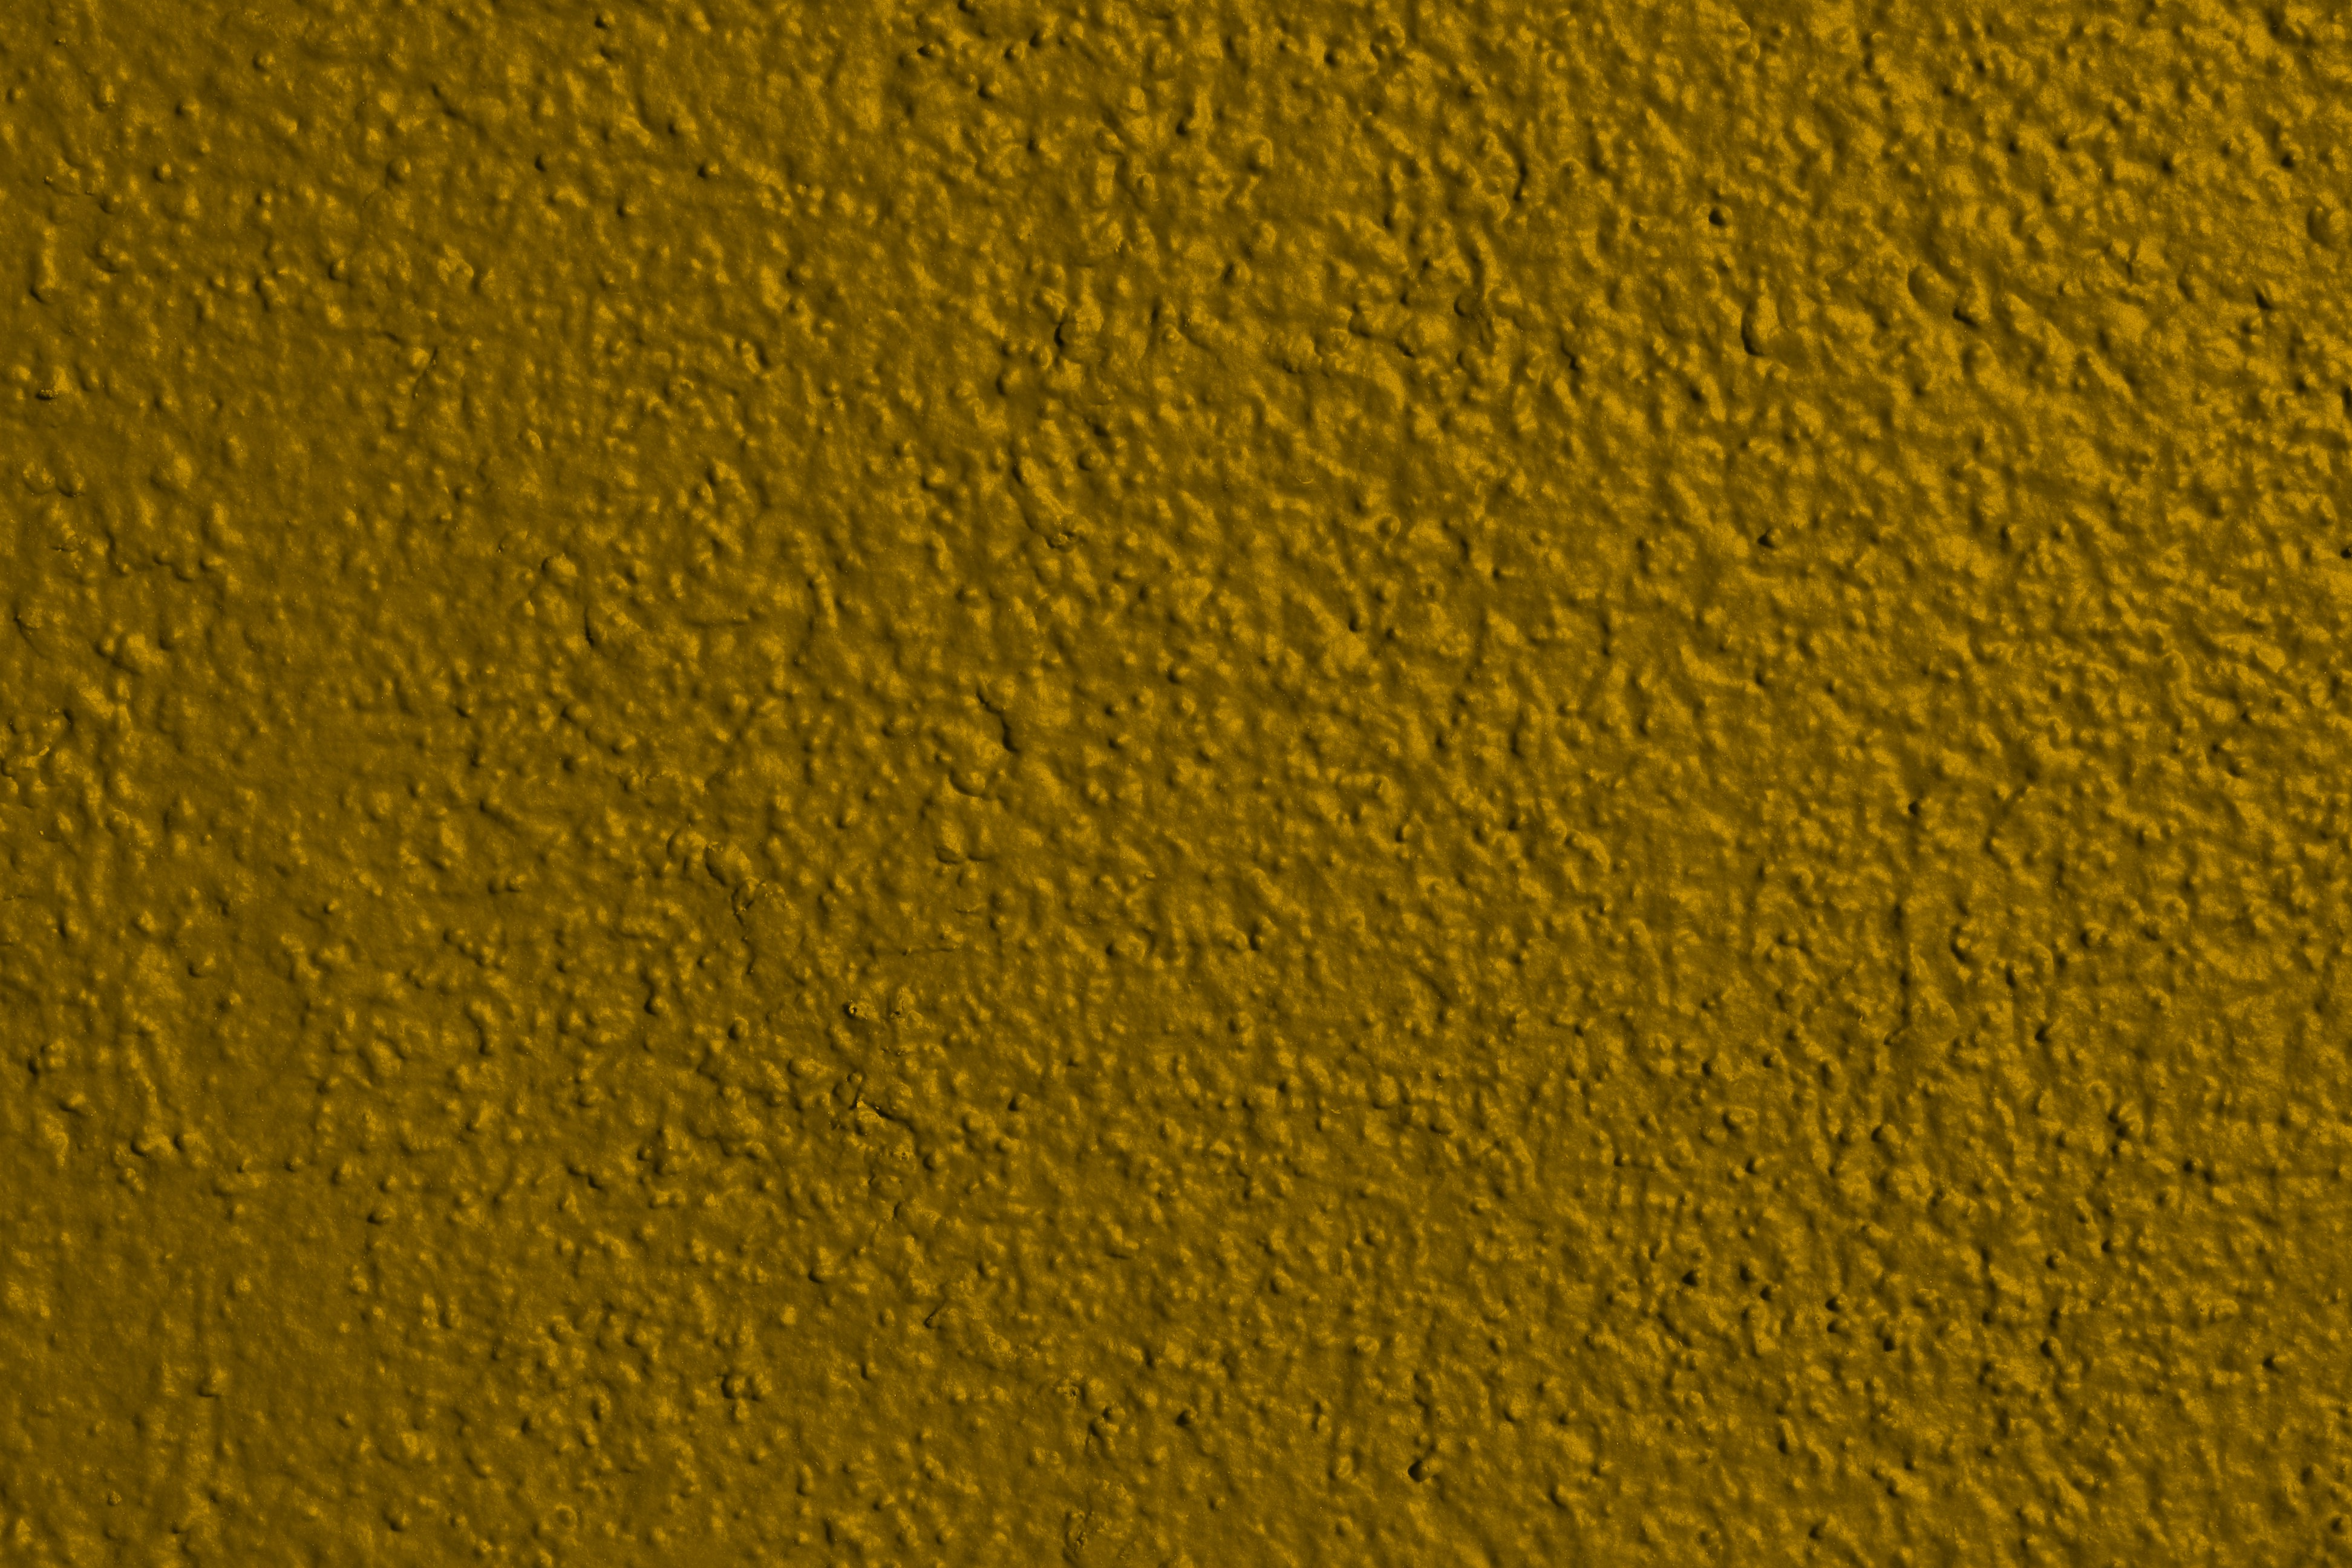 Gold Colored Painted Wall Texture Picture Free